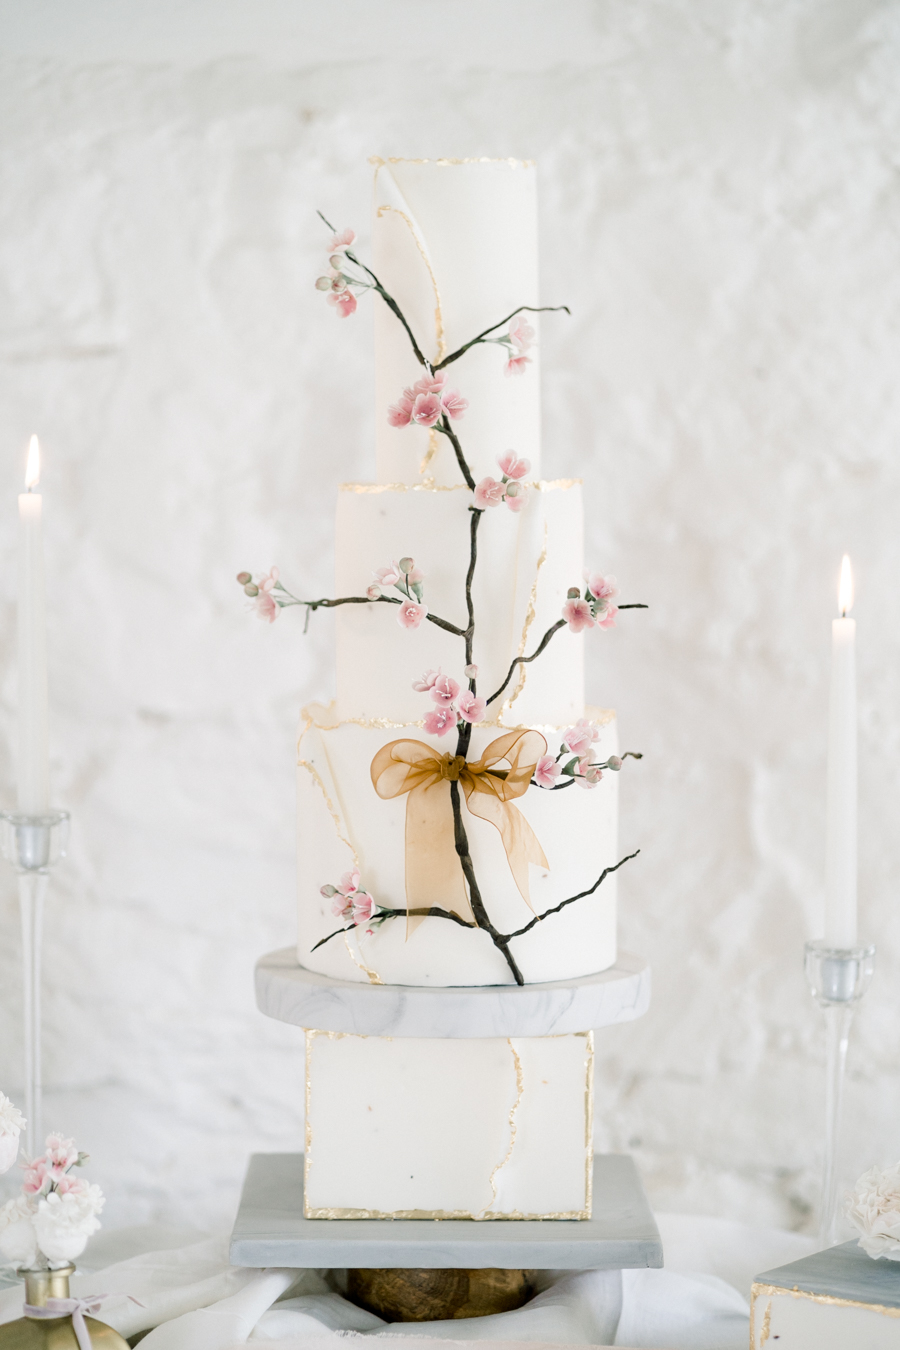 Spring blossom wedding style inspiration and ideas with Chloe Ely Photography at Barton Court (5)